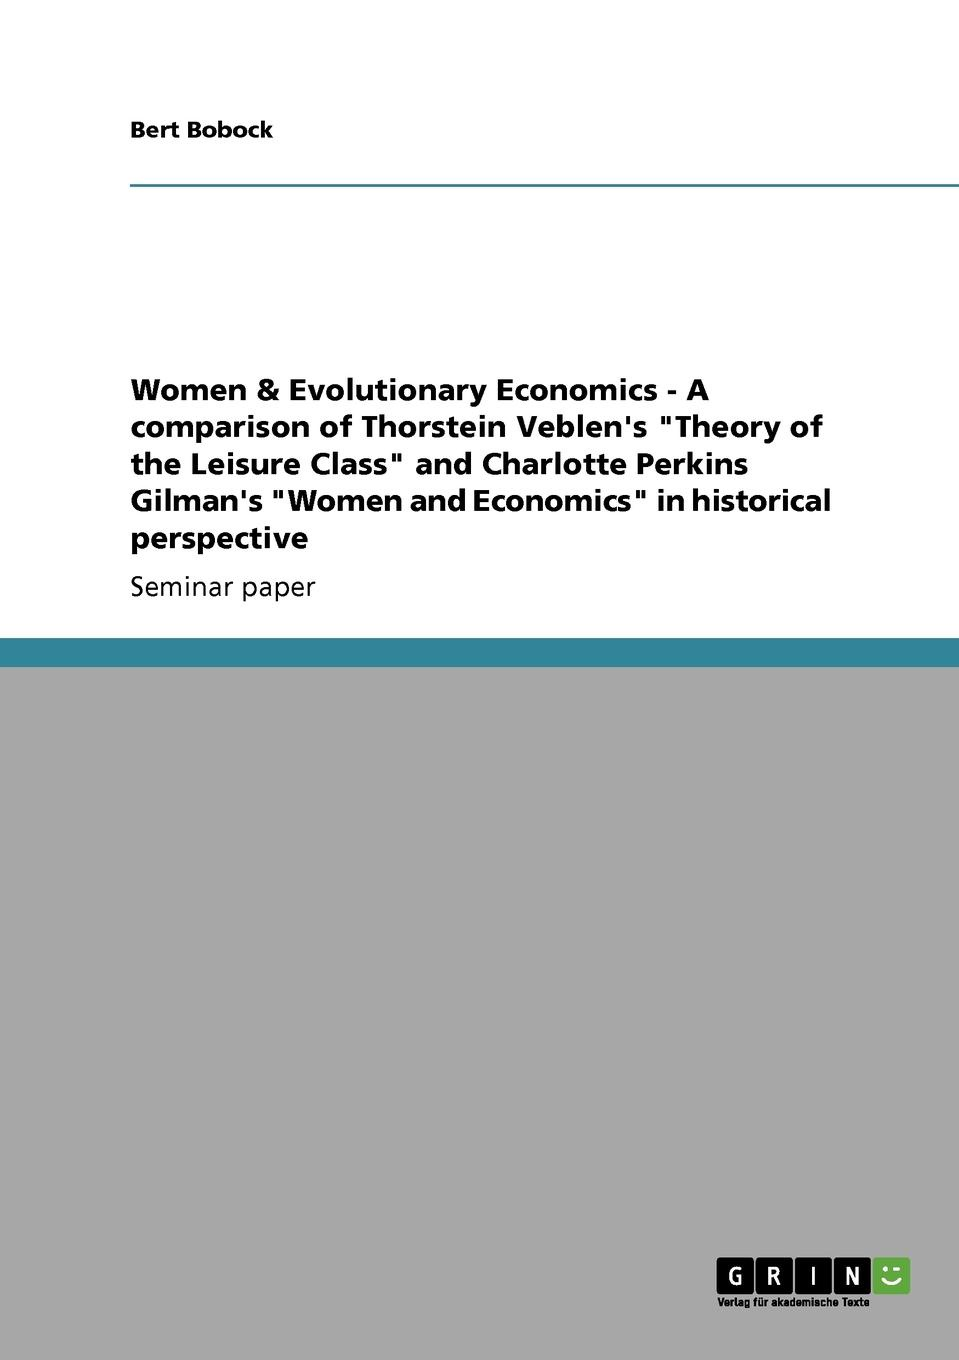 Bert Bobock Women . Evolutionary Economics - A comparison of Thorstein Veblen.s Theory of the Leisure Class and Charlotte Perkins Gilman.s Women and Economics in historical perspective thorstein veblen the theory of the leisure class